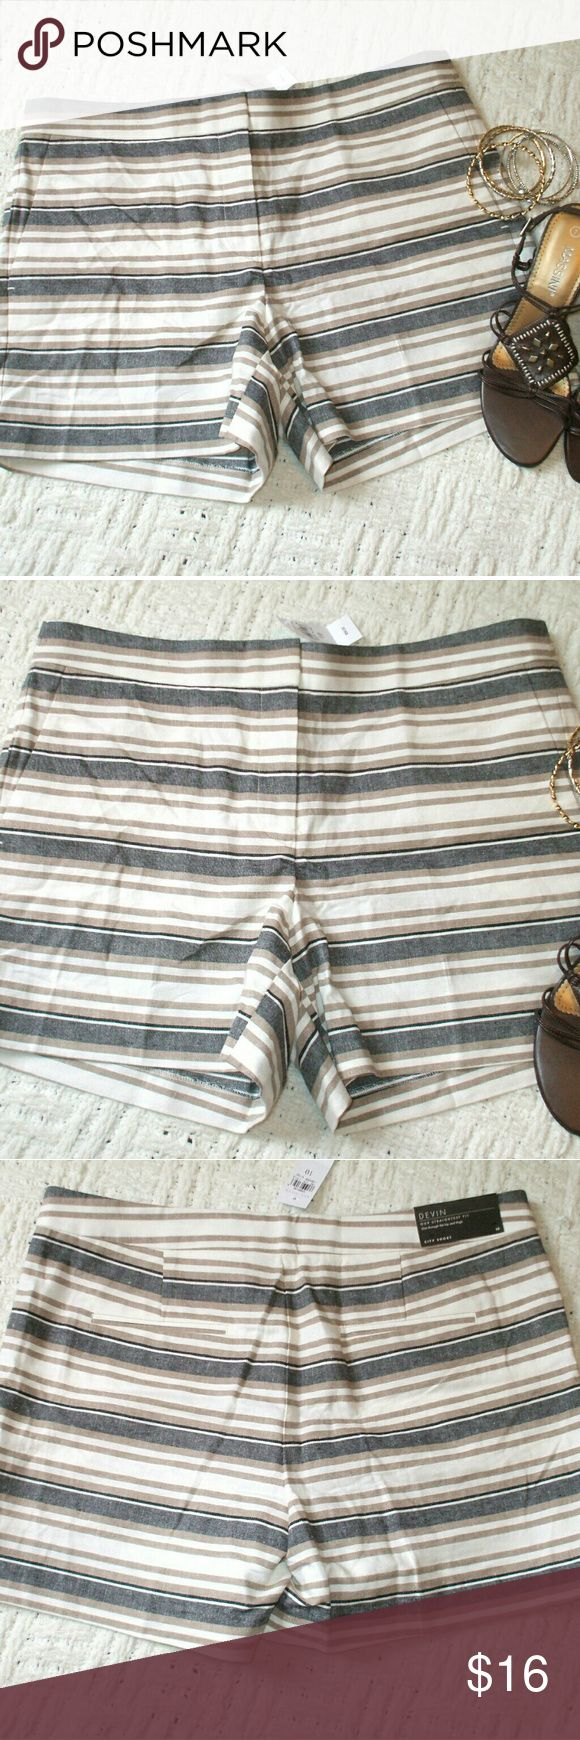 Ann Taylor Linen Blend Devin City Shorts Devin City Shorts (straightest fit) - White, black & brown stripes - 55% linen, 26% cotton, 19% rayon - Brand new with store tags - smoking home Ann Taylor Shorts